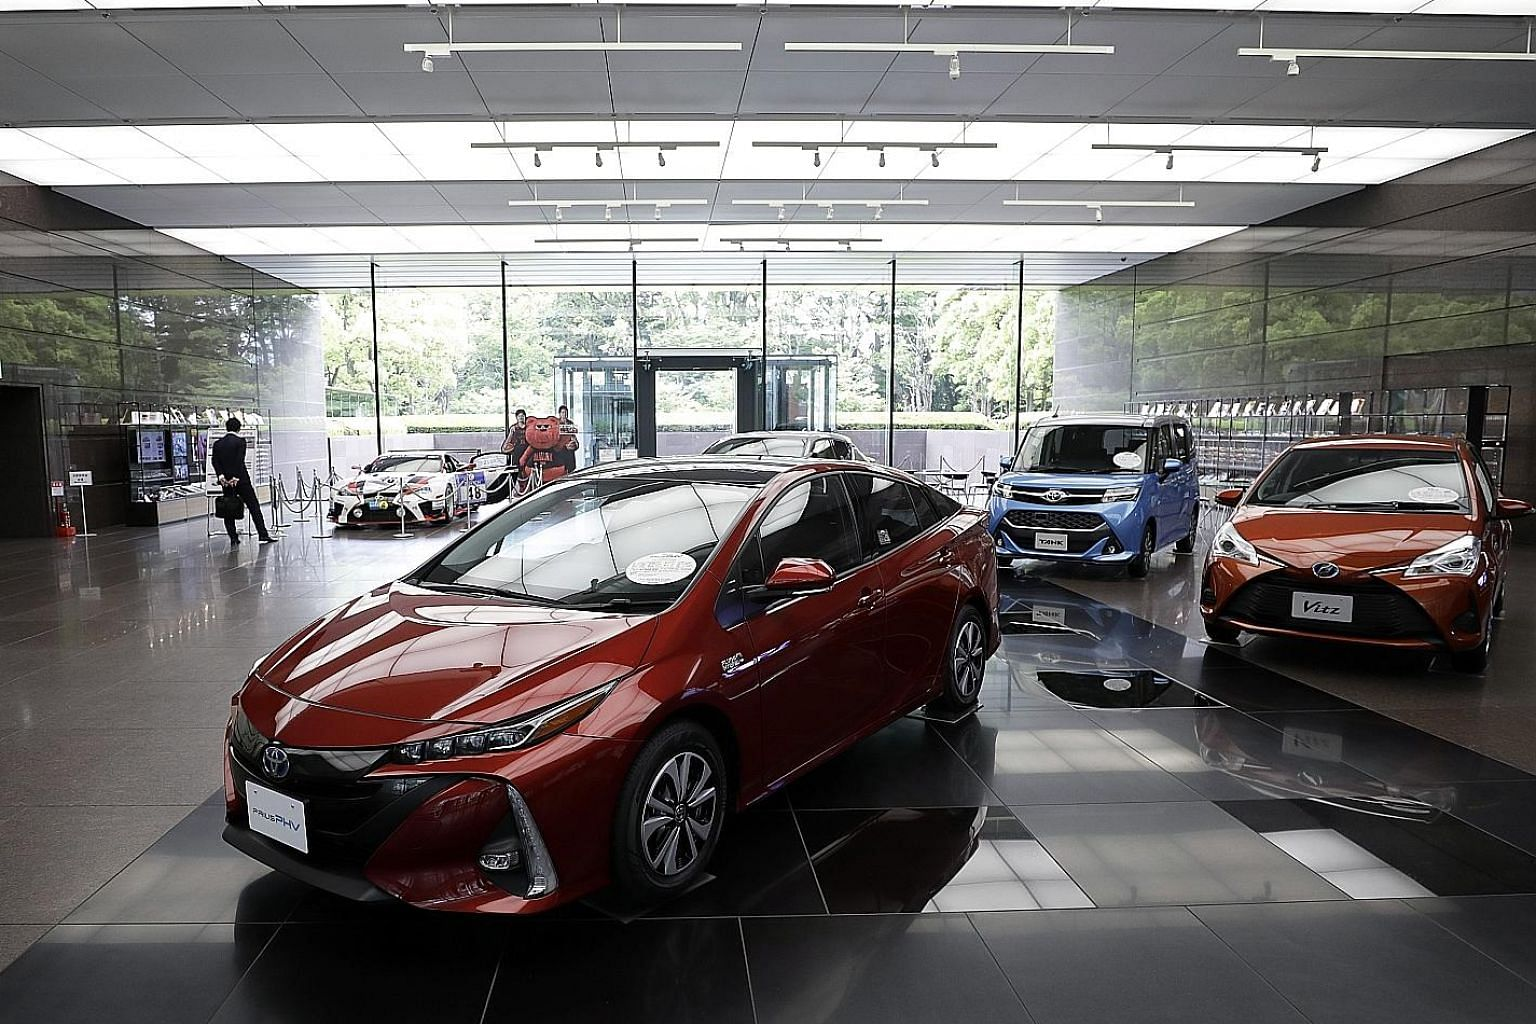 Toyota posted a net profit of 1.83 trillion yen (S$22.7 billion) on slightly lower revenue of 27.6 trillion yen in the recently ended year to March.